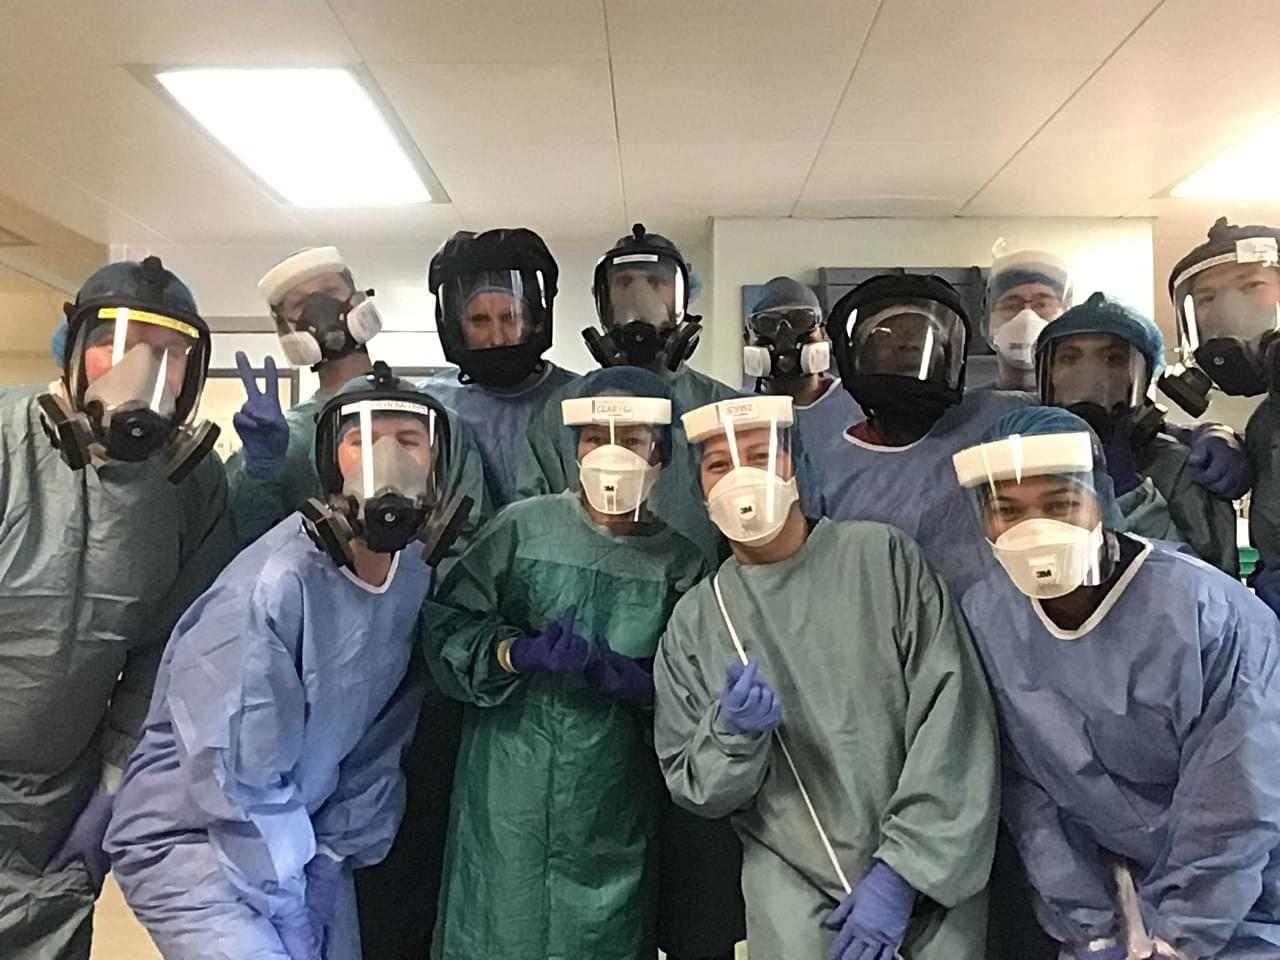 Stories of Intensive Care Nursing during the COVID-19 pandemic